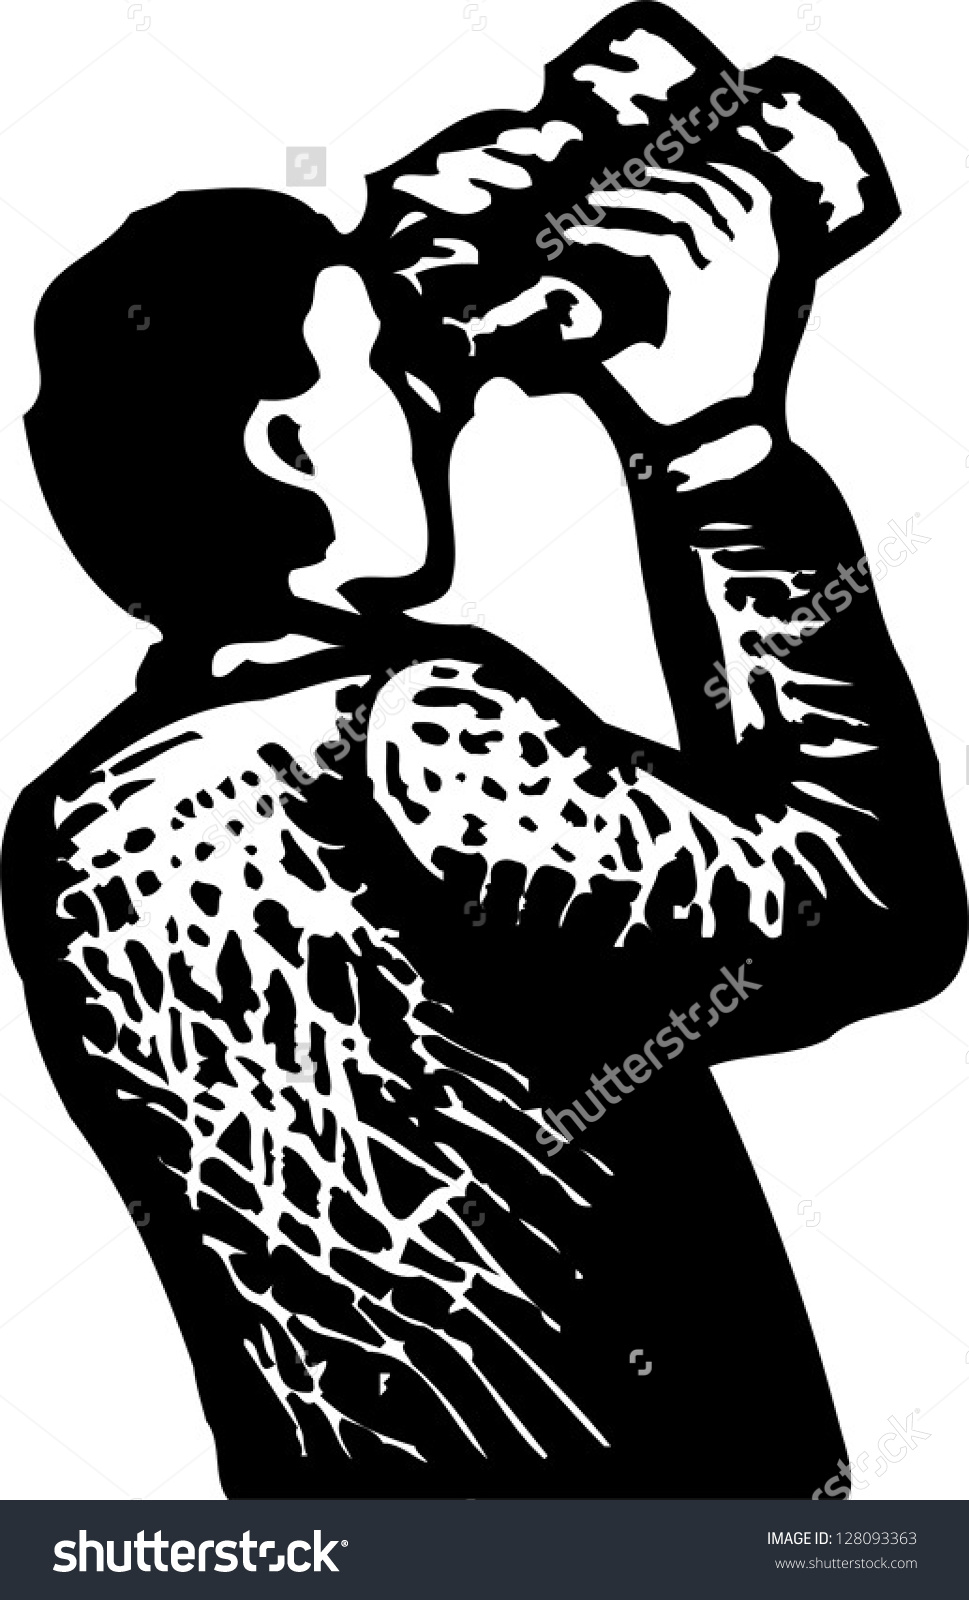 Black White Vector Illustration Man Looking Stock Vector 128093363.